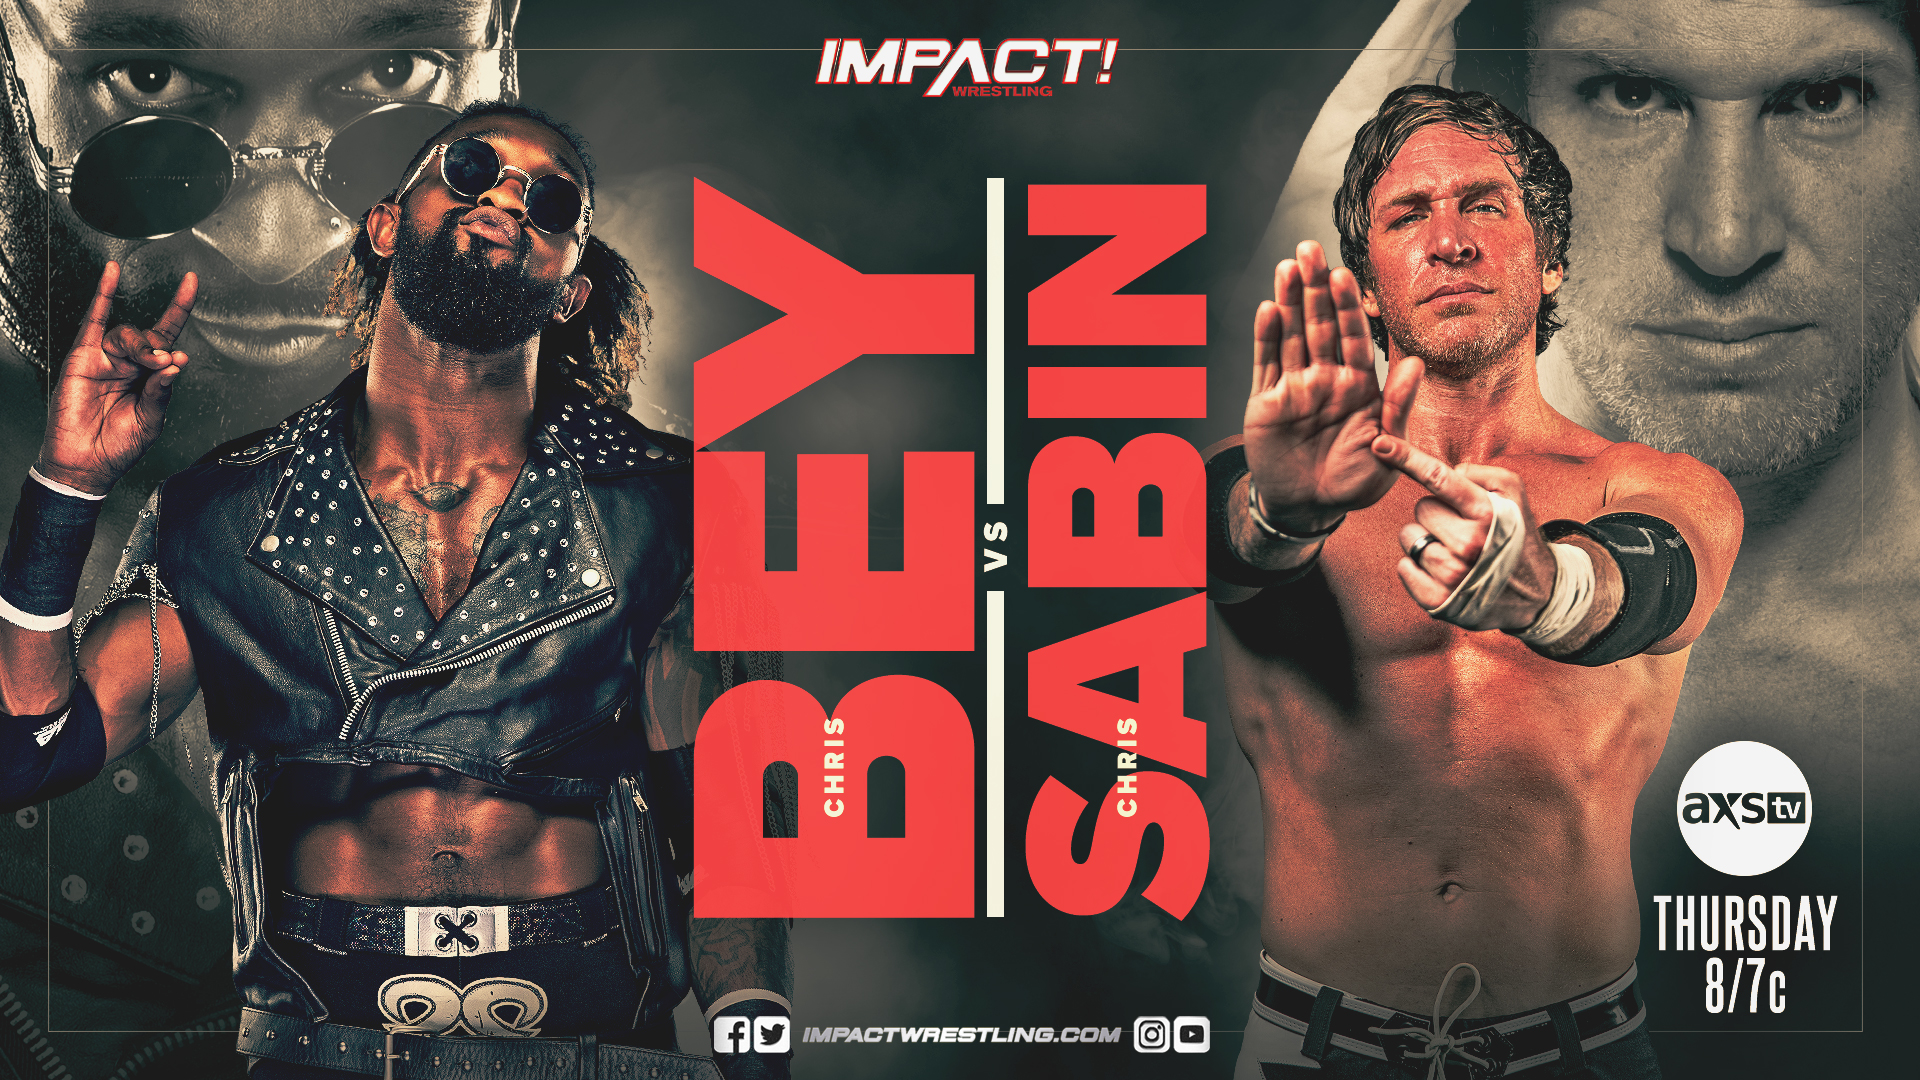 New Match Announced For This Week's Impact Wrestling